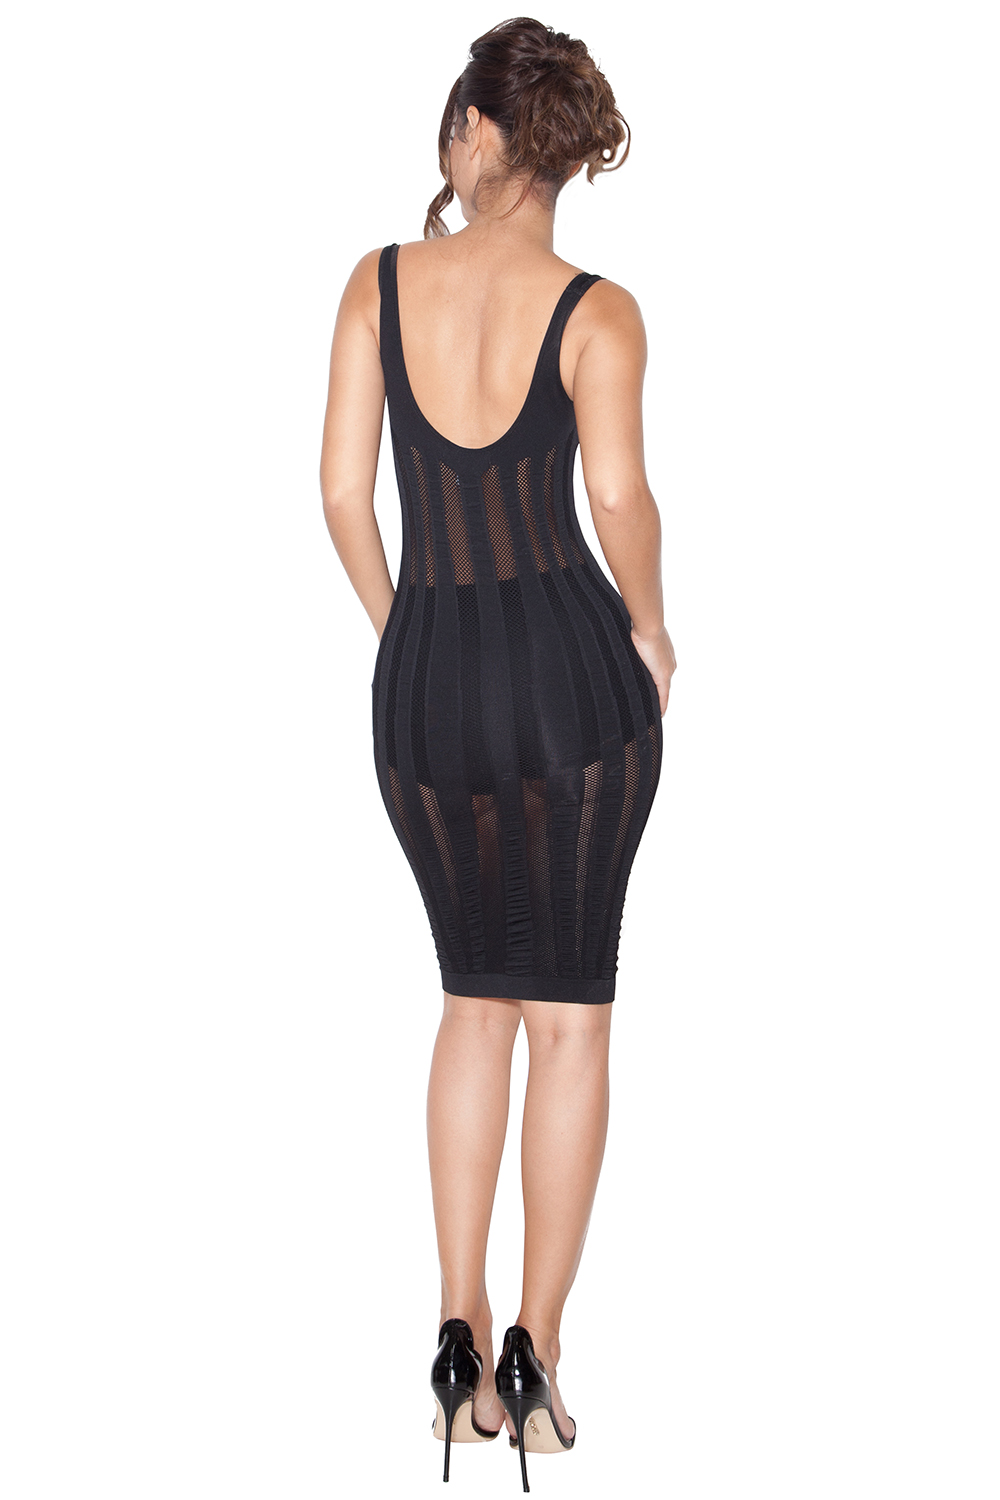 Clothing Bodycon Dresses Solaina Black Knitted Lycra